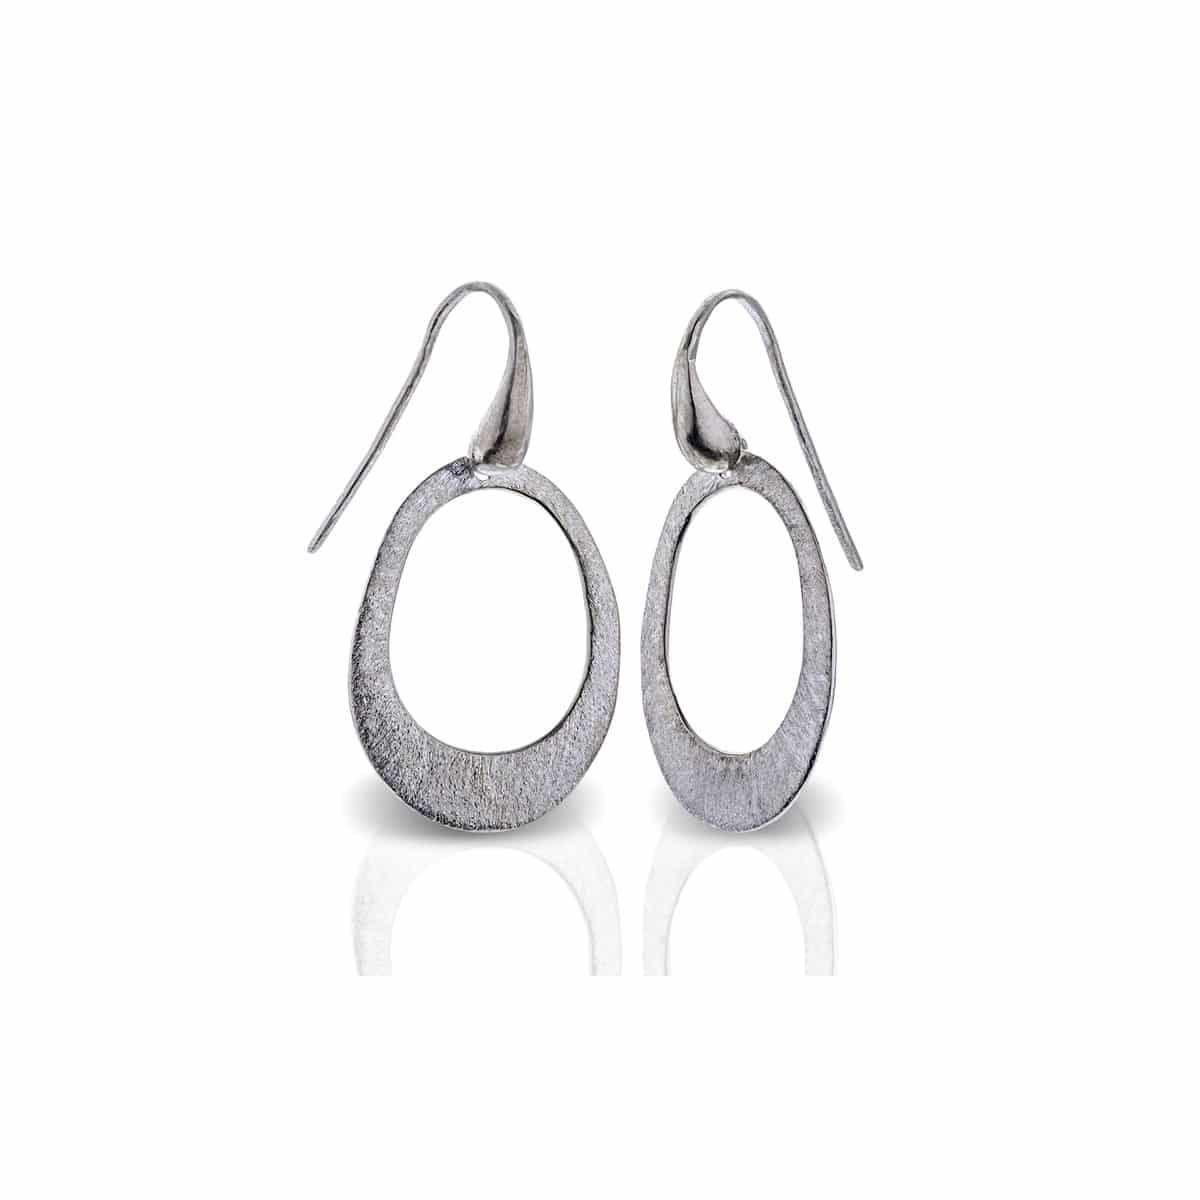 Silver sterling hoop earrings